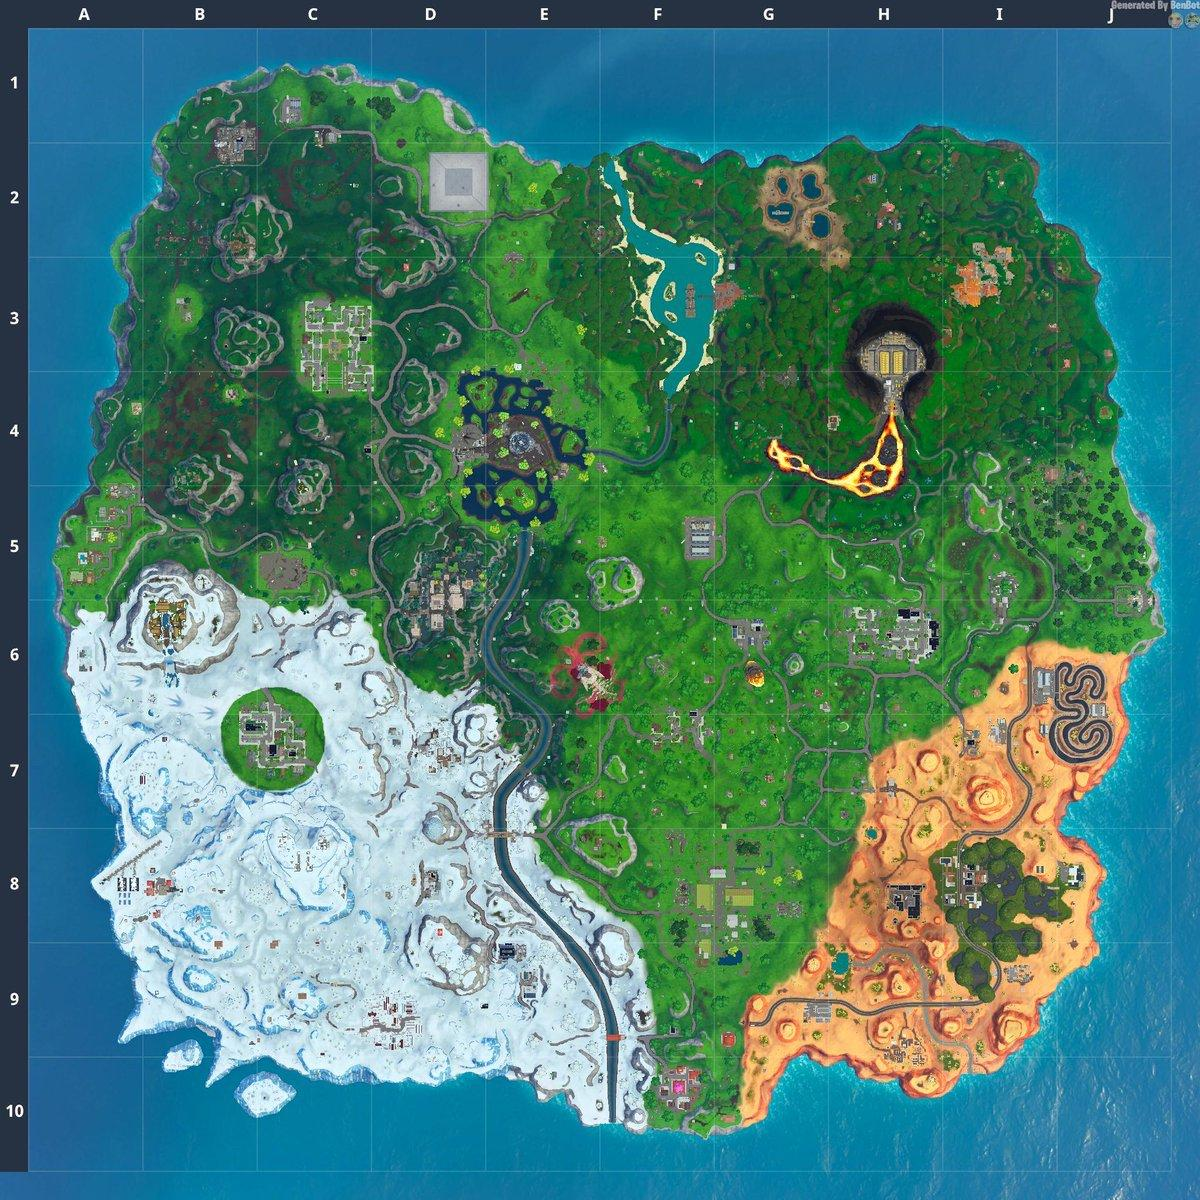 Greasy Grove & Moisty Mire are returning as Rift Zones today! #Fortnite<br>http://pic.twitter.com/30PFeMWprQ